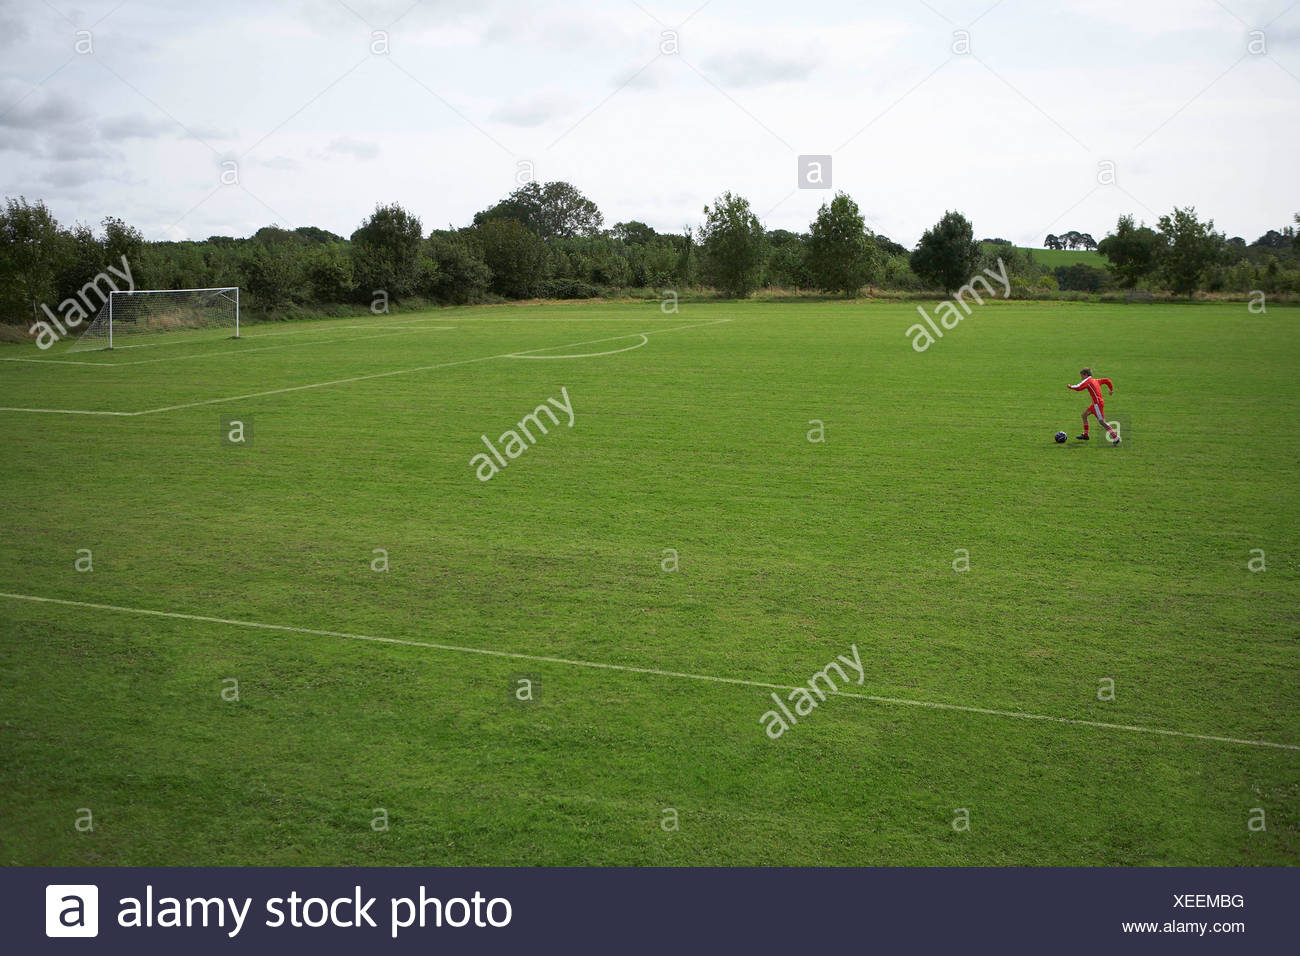 Footballer dribbling a ball towards goal - Stock Image